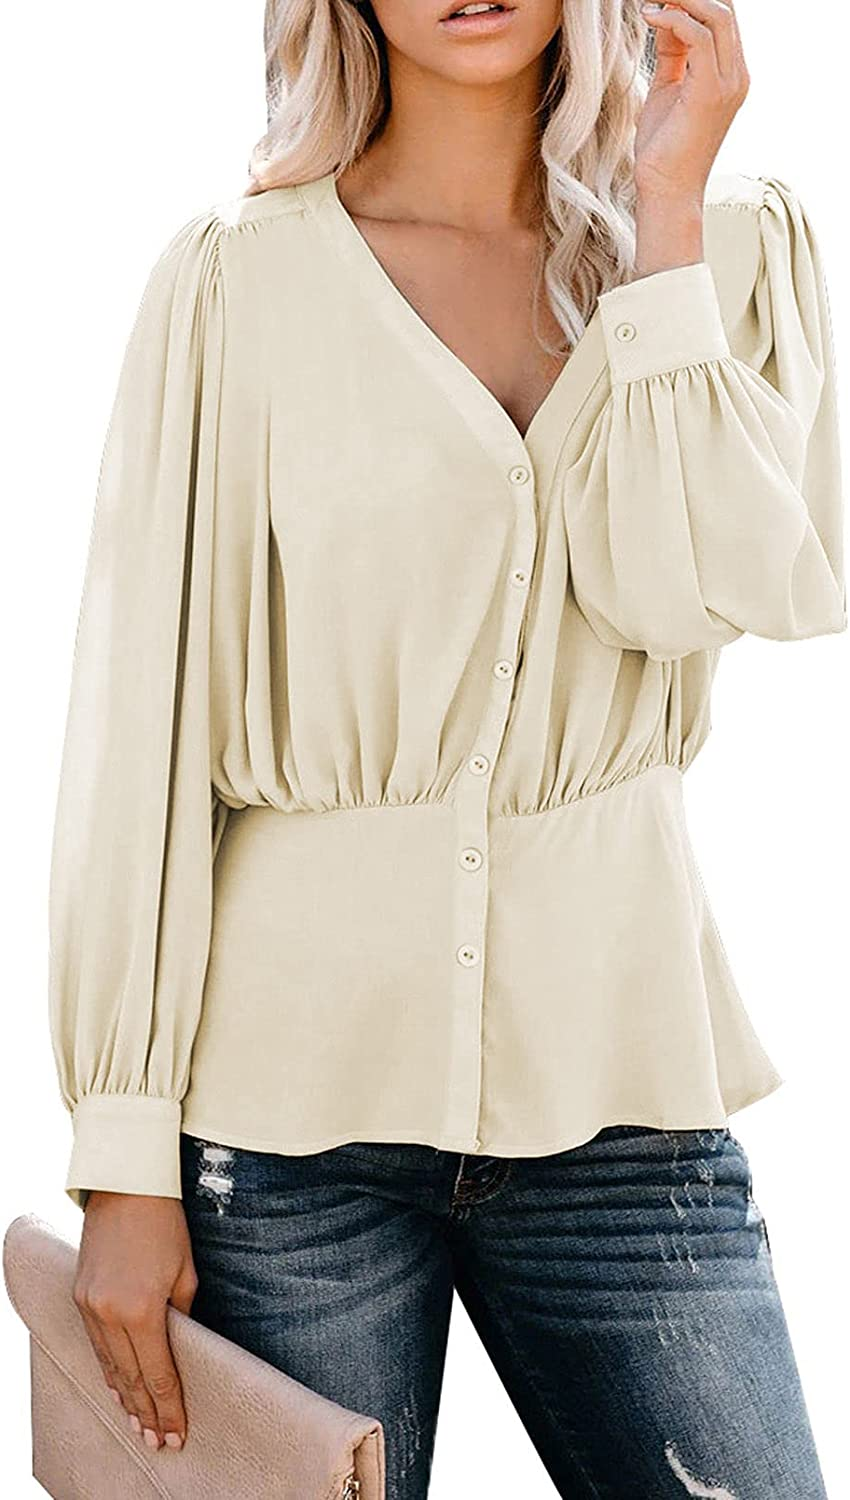 Meenew Women's Long Sleeve Button Down Shirts Pleated Blouses Peplum Tops L Apricot